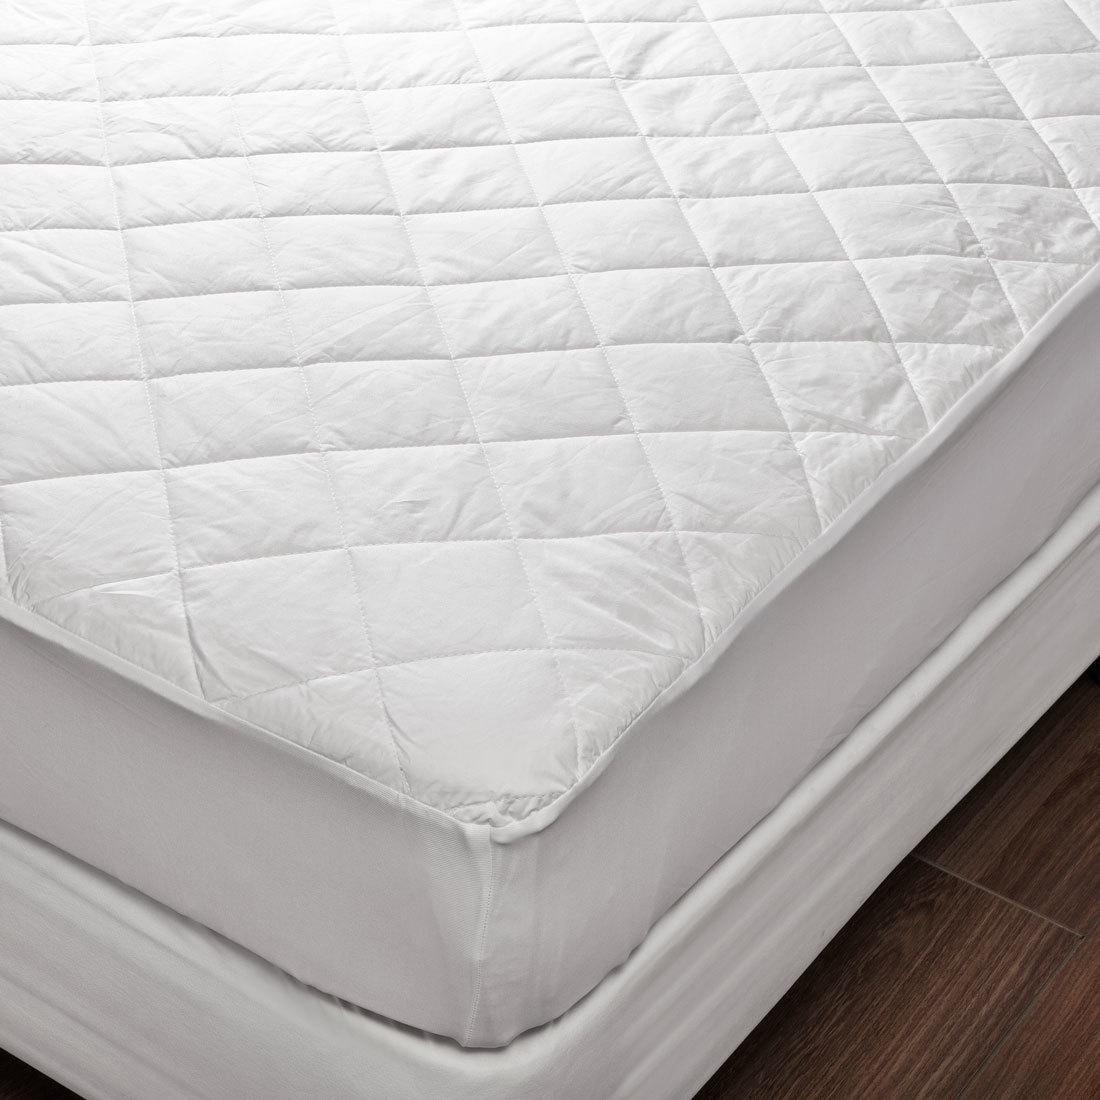 Canningvale Luxury Cotton Mattress Protector